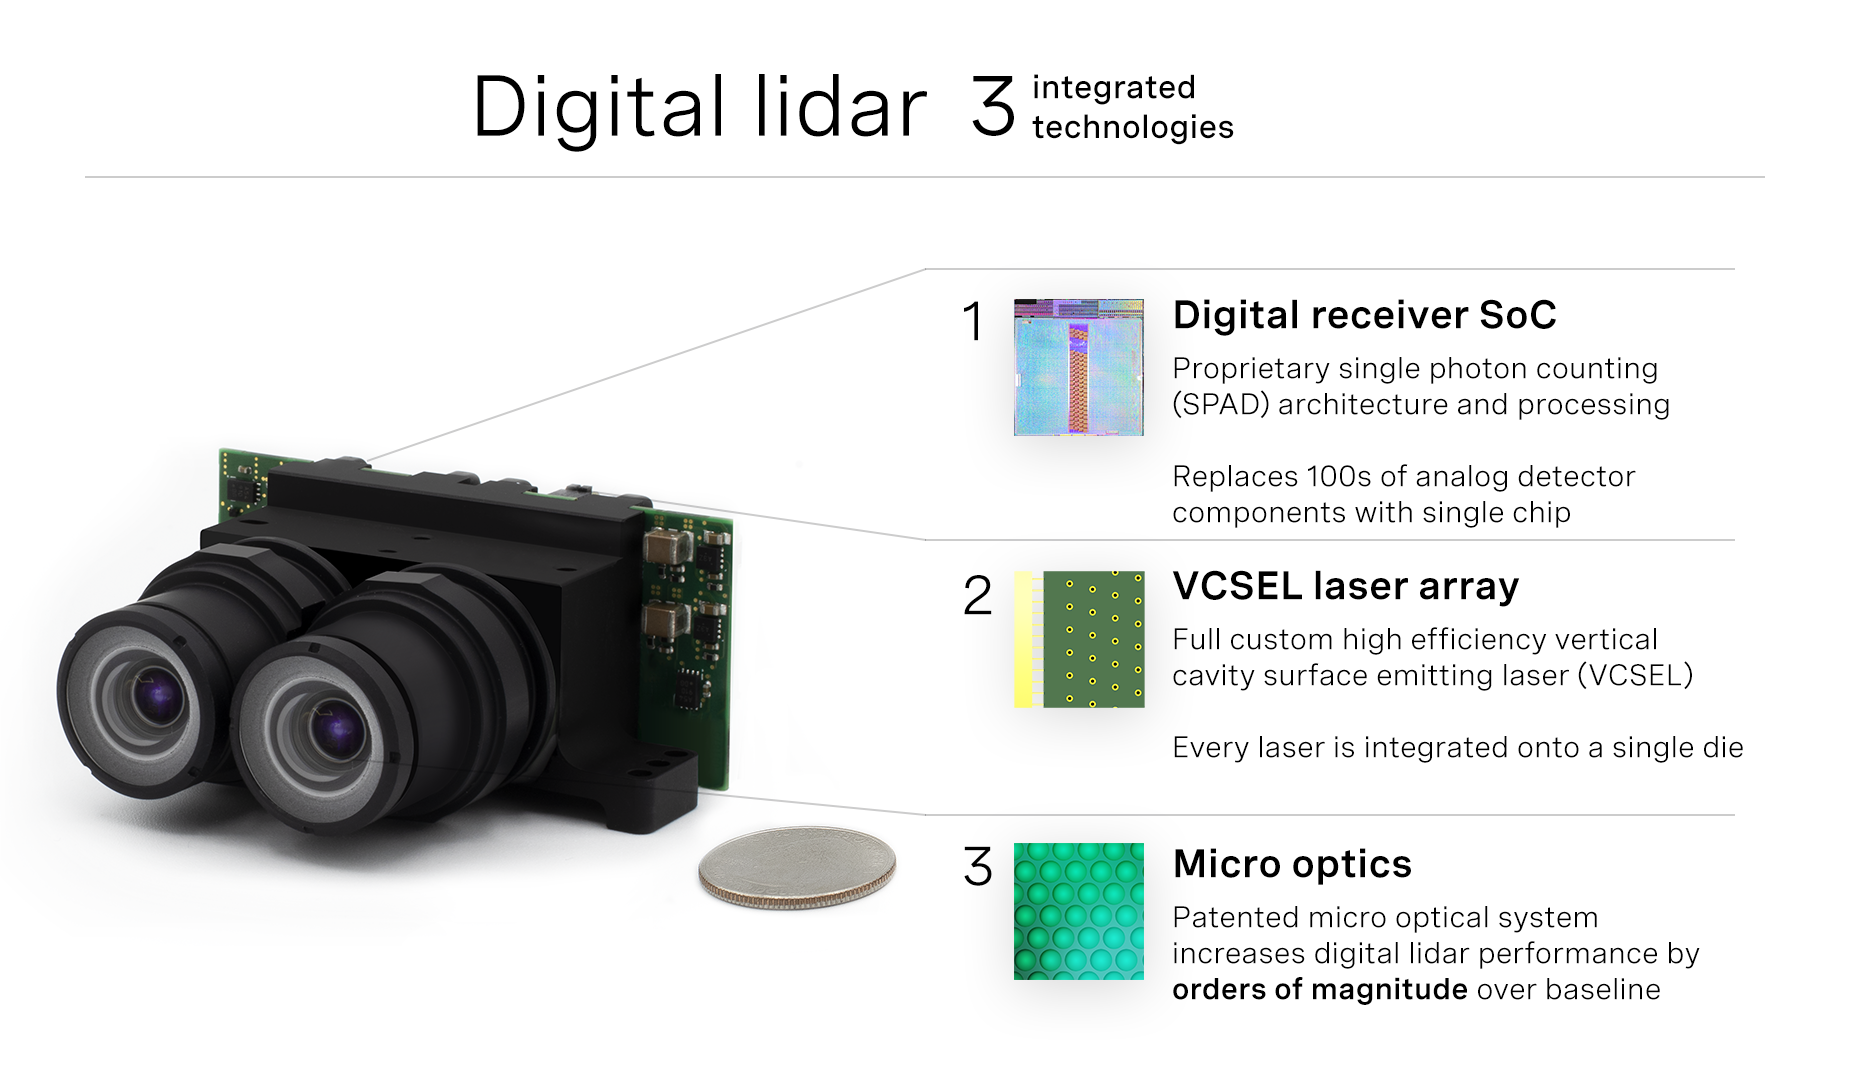 Ouster's digital lidar architecture